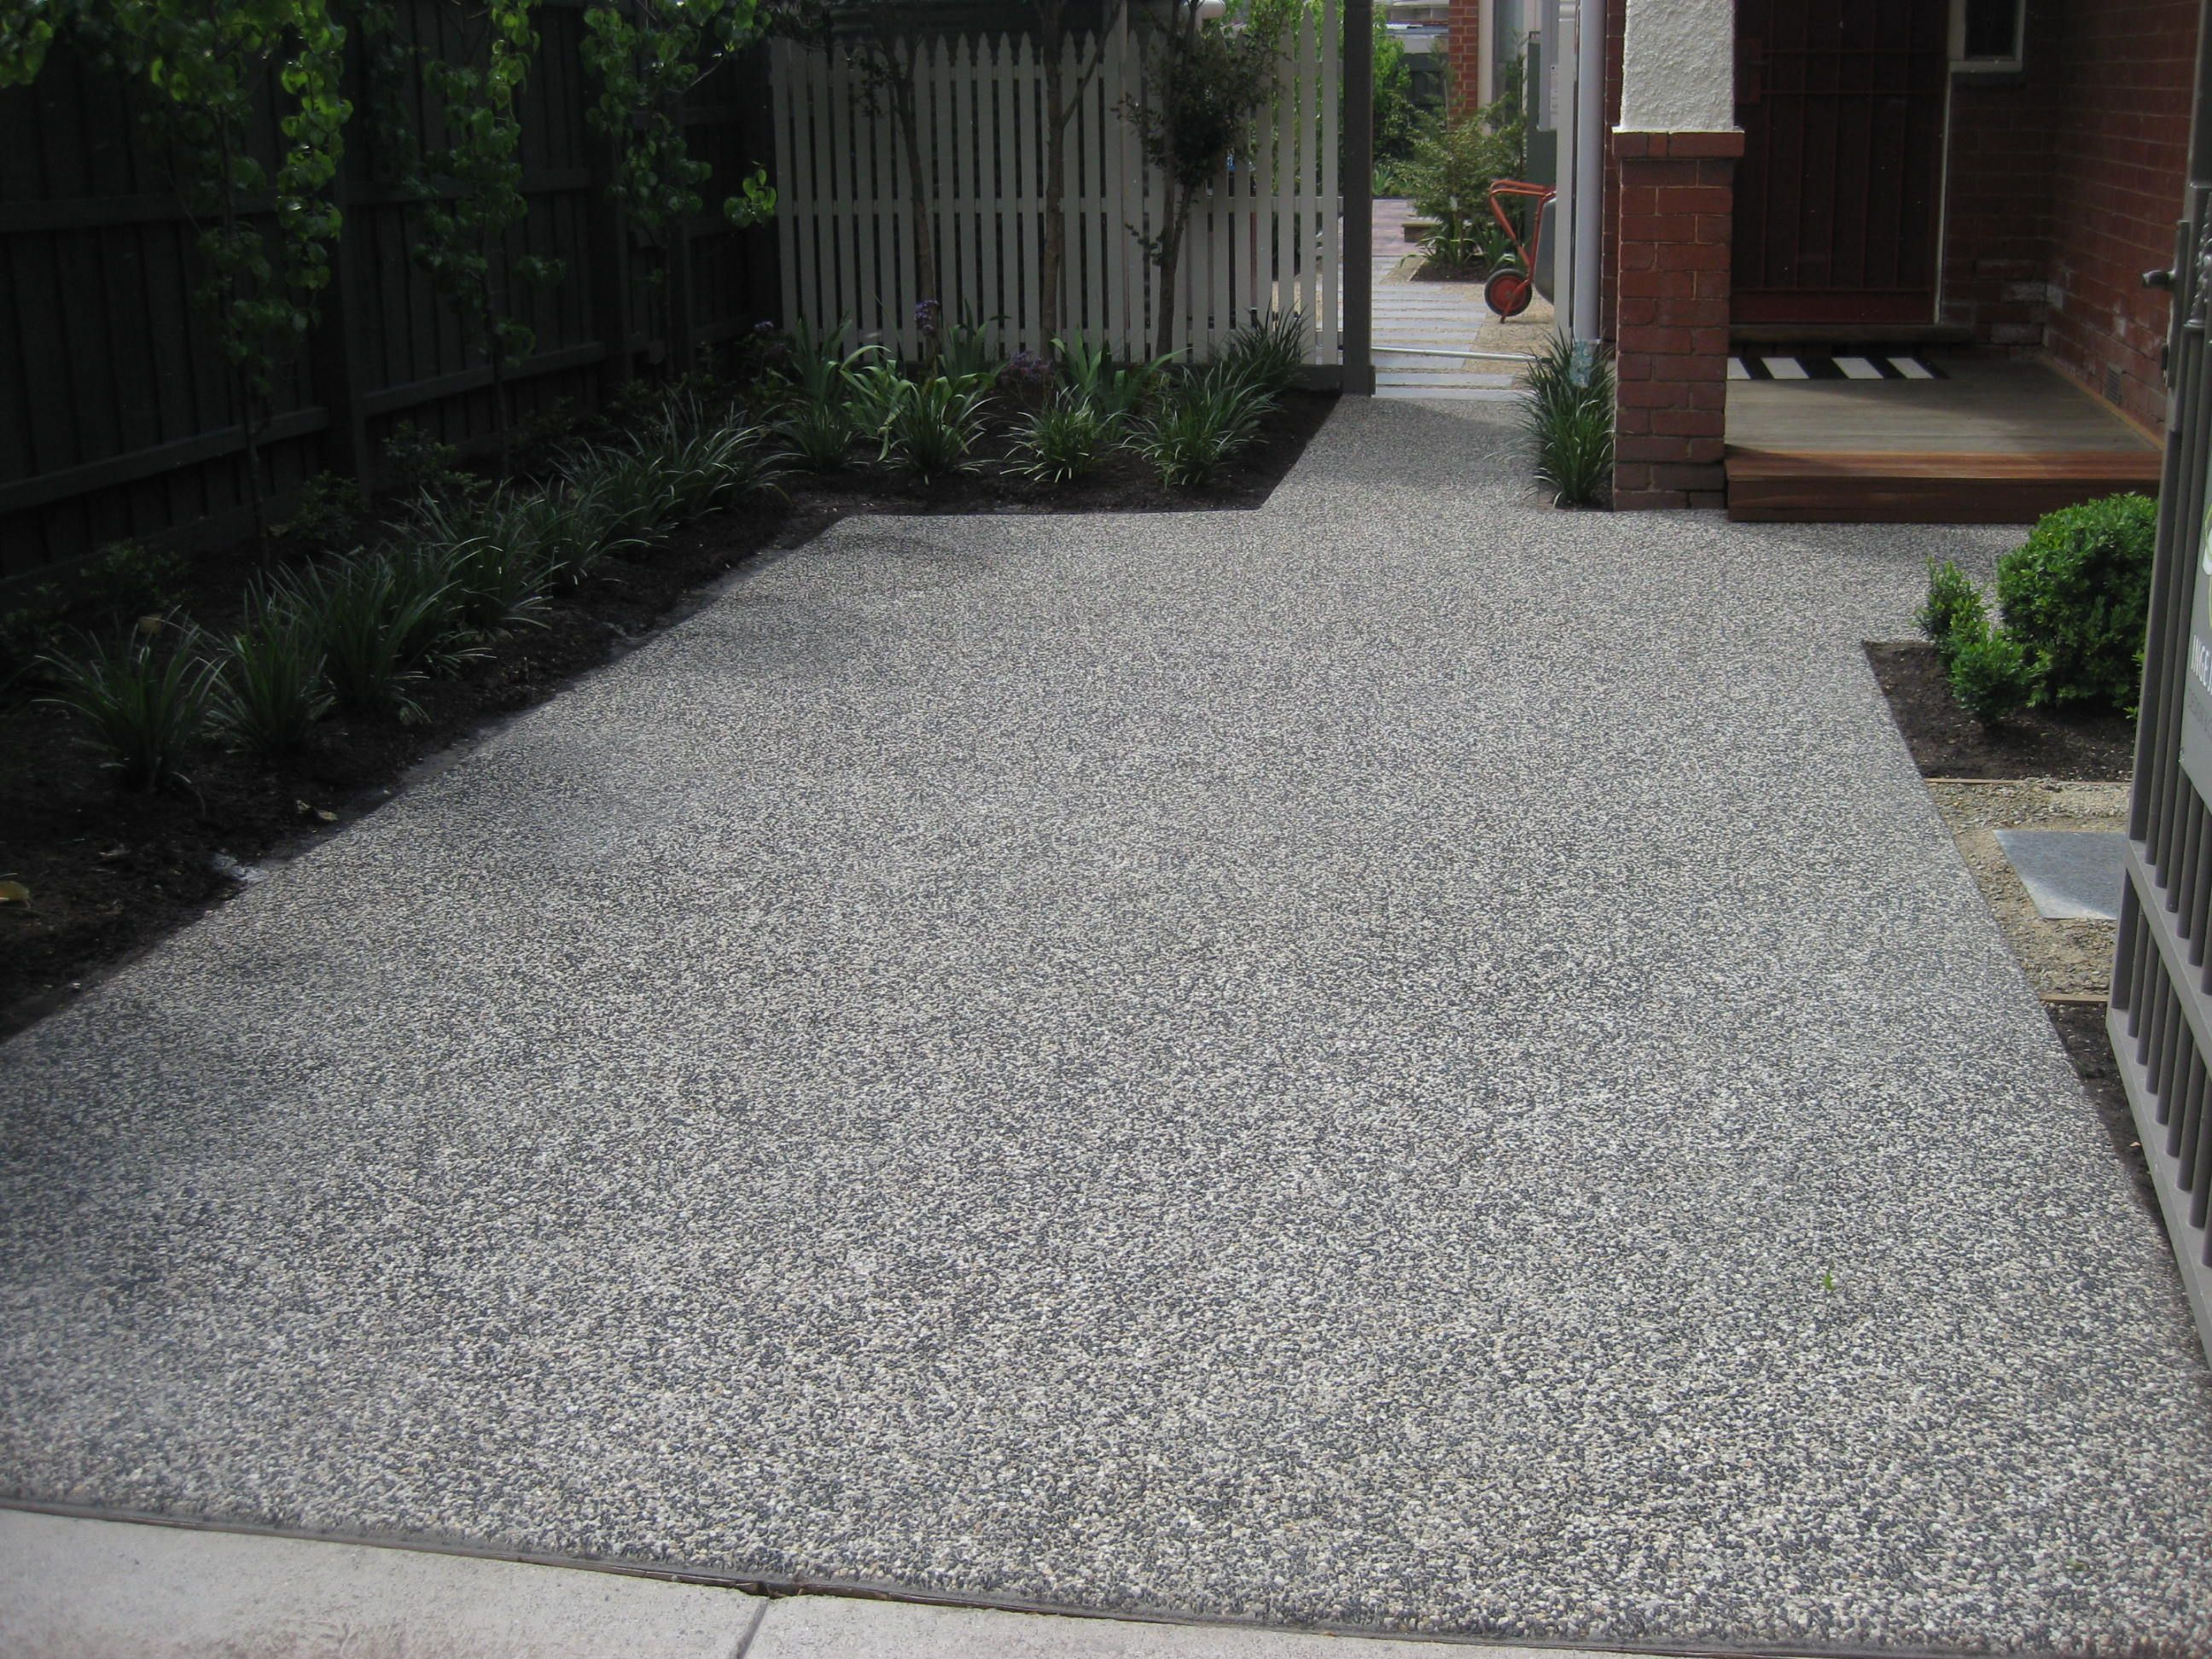 Exposed aggregate driveway pictures google search new for Cement driveway ideas